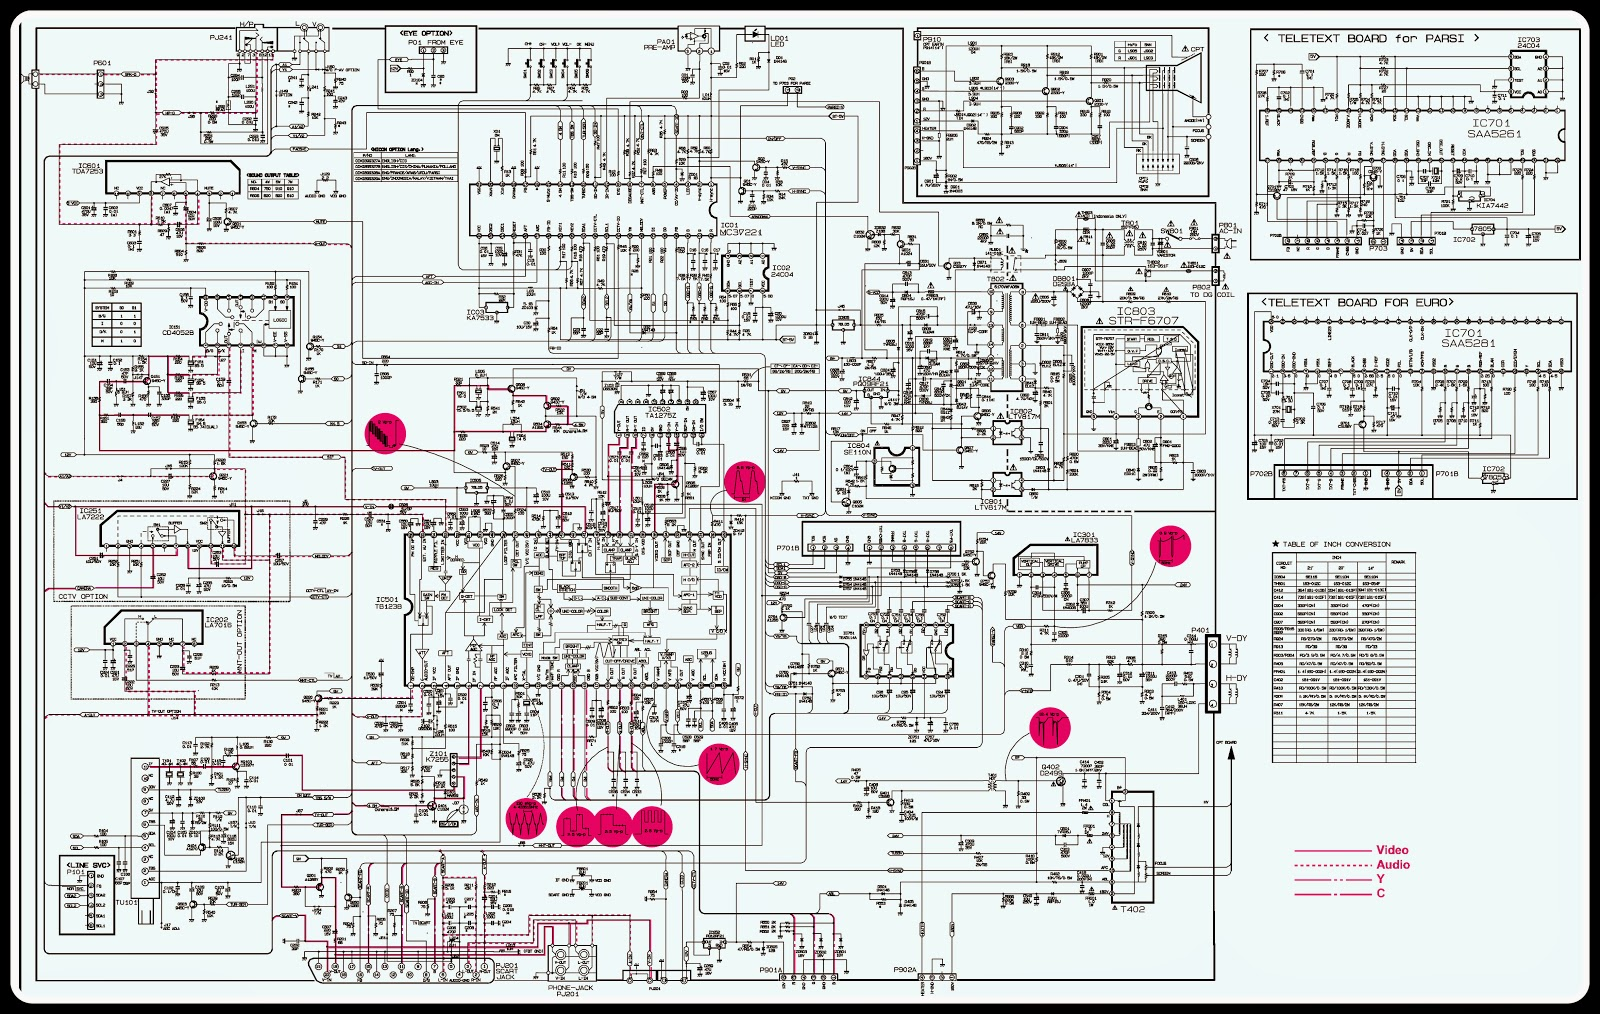 lg%2Bcrt%2Btv.bmp lg cf20f schematic (circuit diagram) 20 inch crt tv electro help lg wiring diagrams at fashall.co